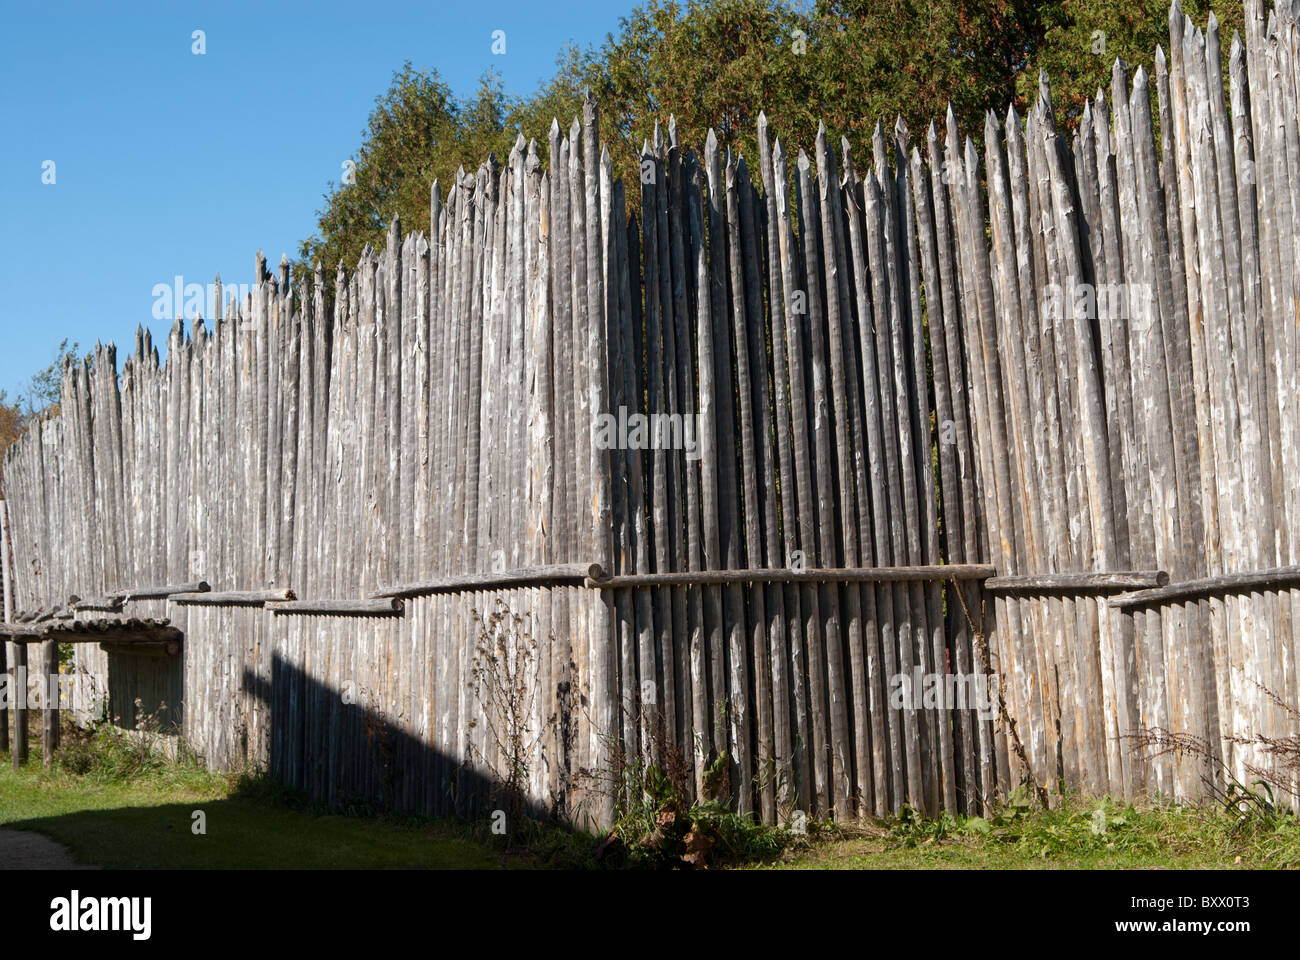 A wooden palisade fence at the museum of Sainte-Maire Among the Hurons, in Midland, Ontario, Canada. - Stock Image